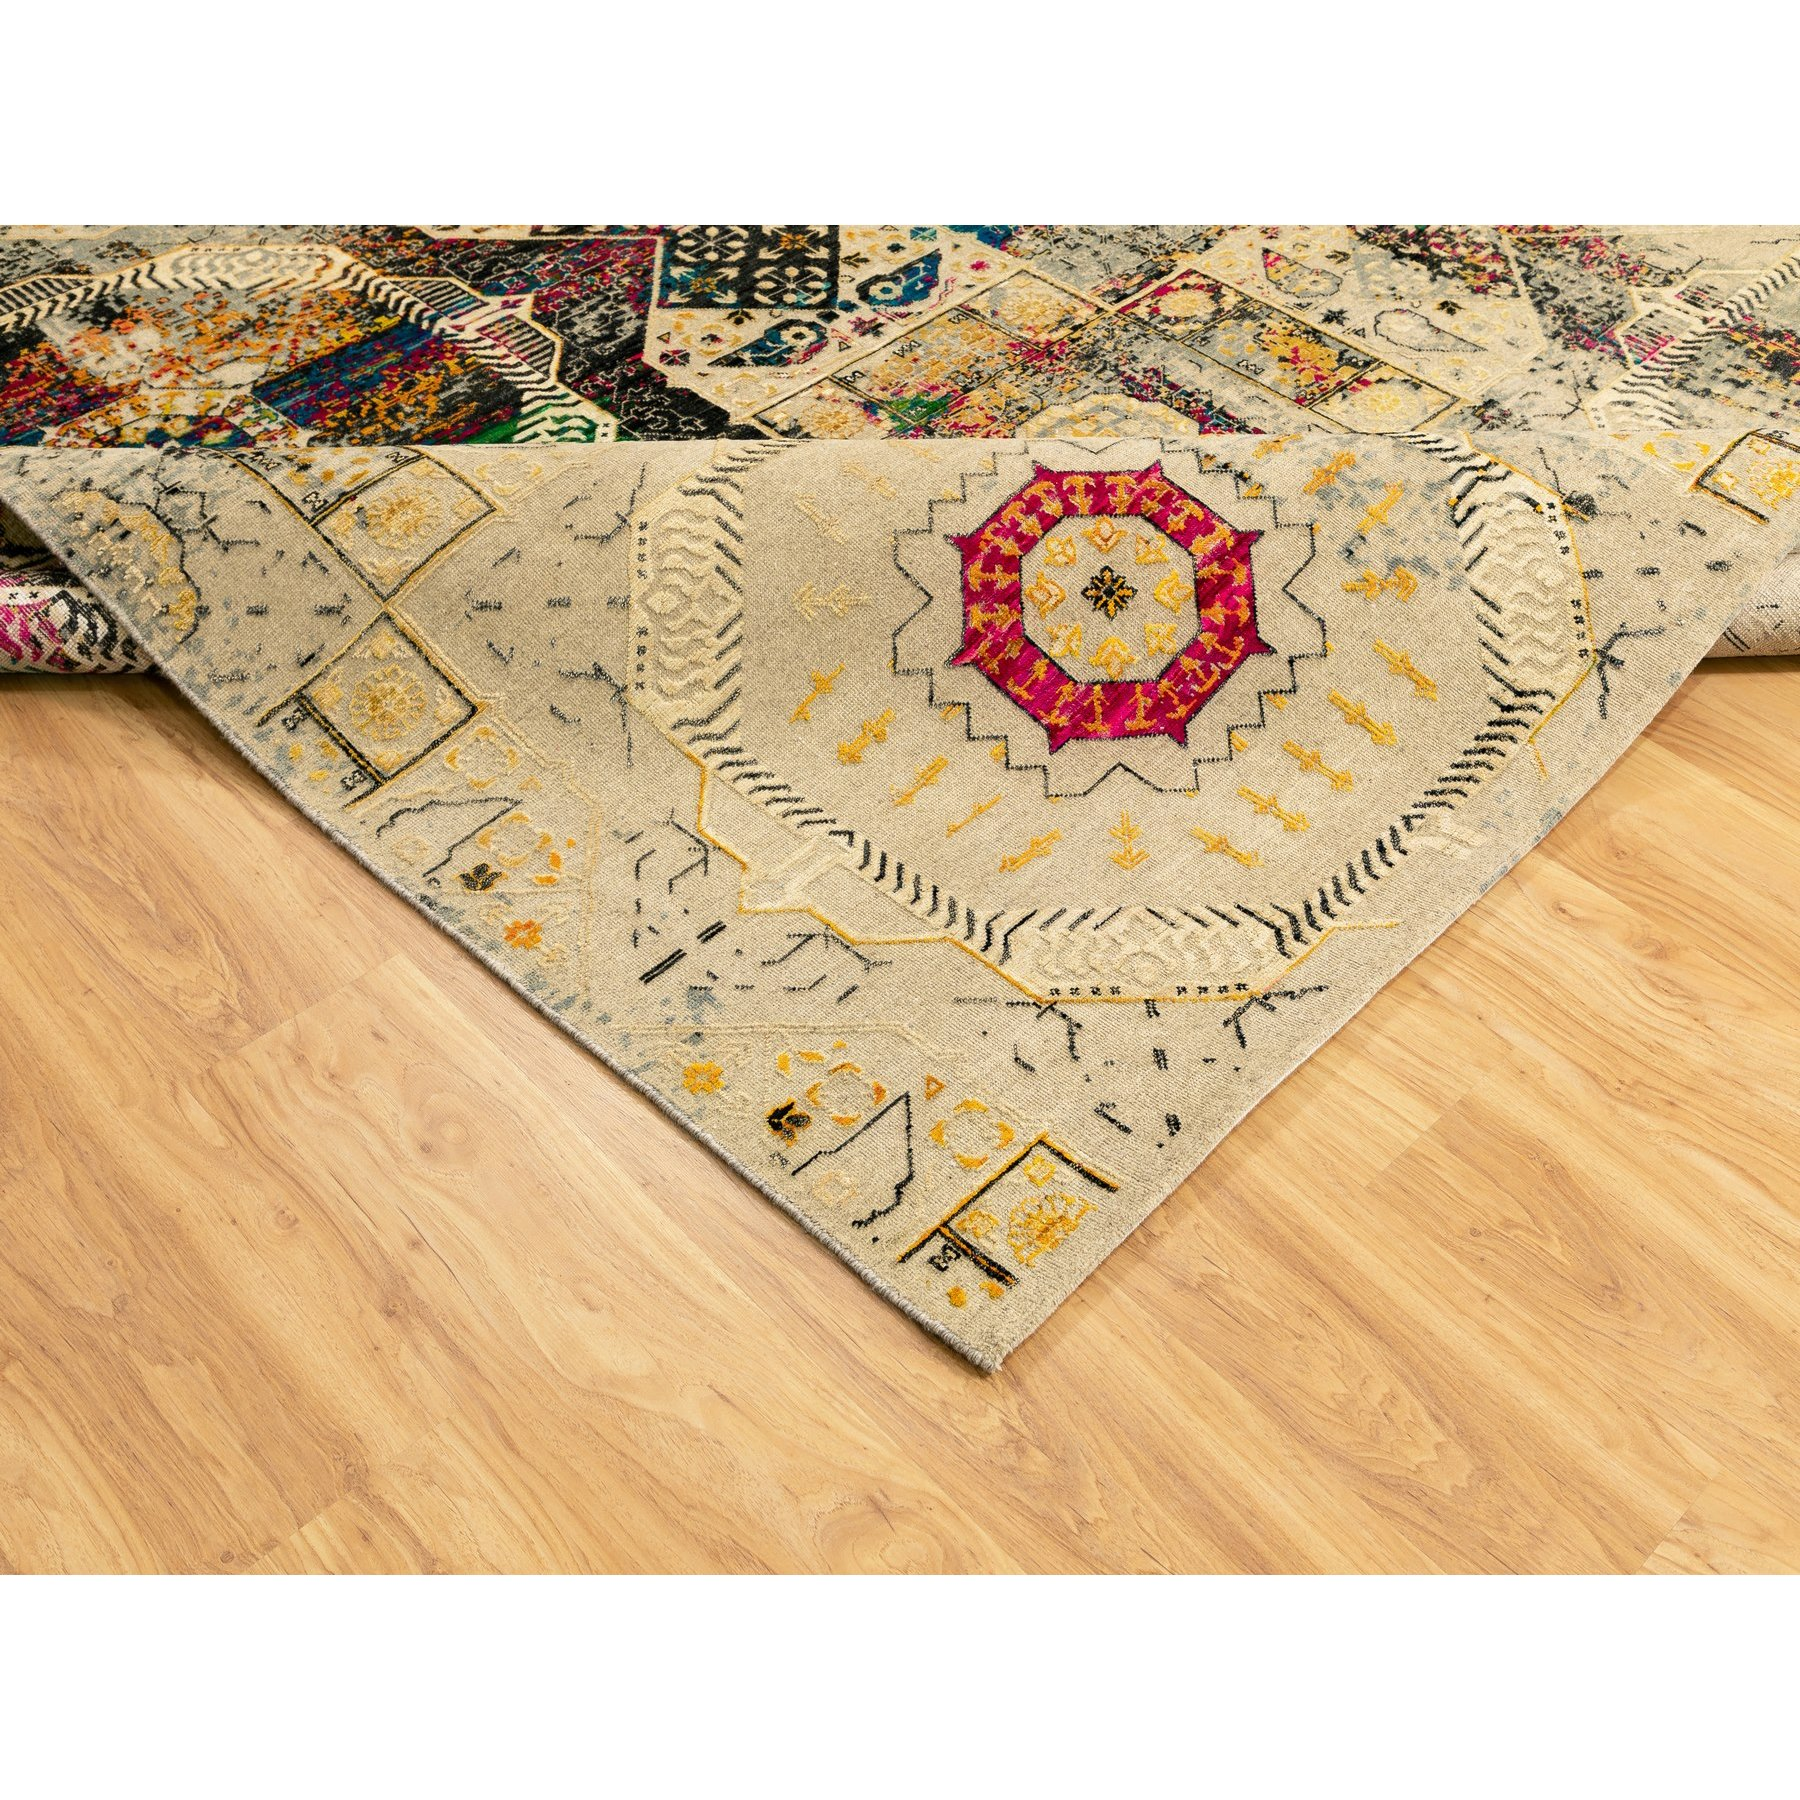 9'x12' Colorful Sari Silk With Mamluk Design Hand Knotted Oriental Rug